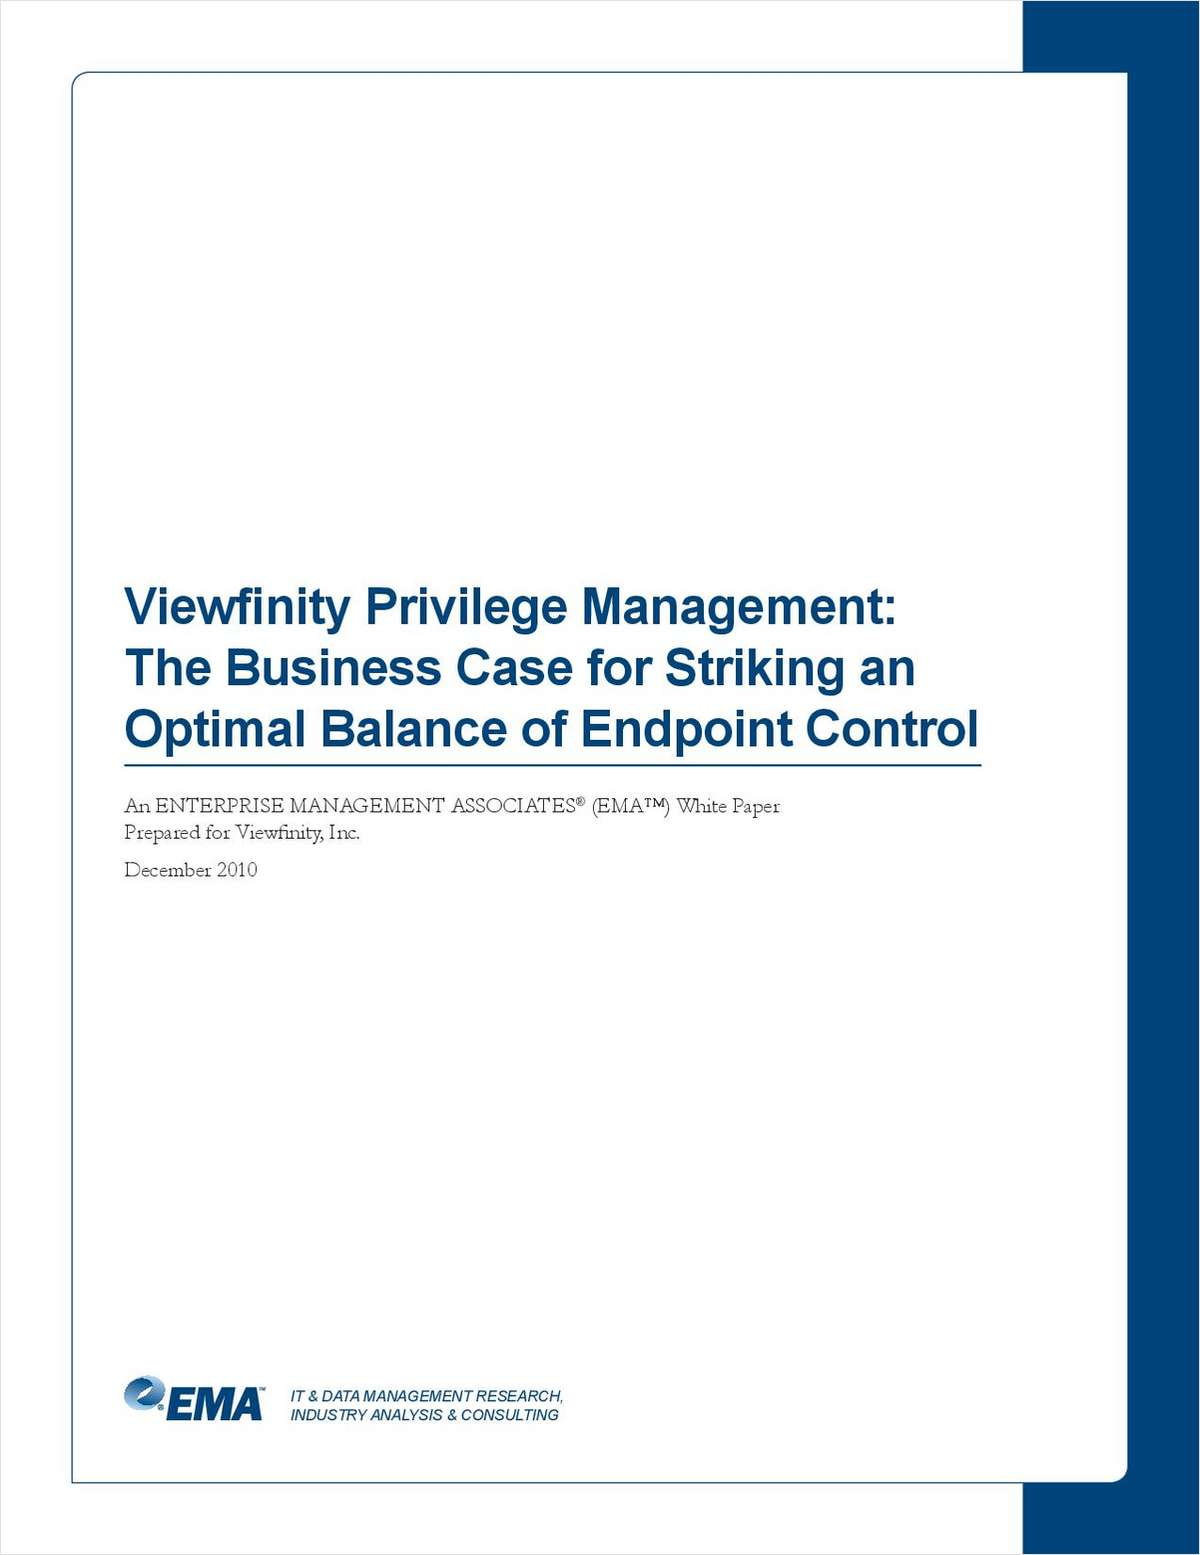 EMA Research: The Business Case for Striking an Optimal Balance of Endpoint Control